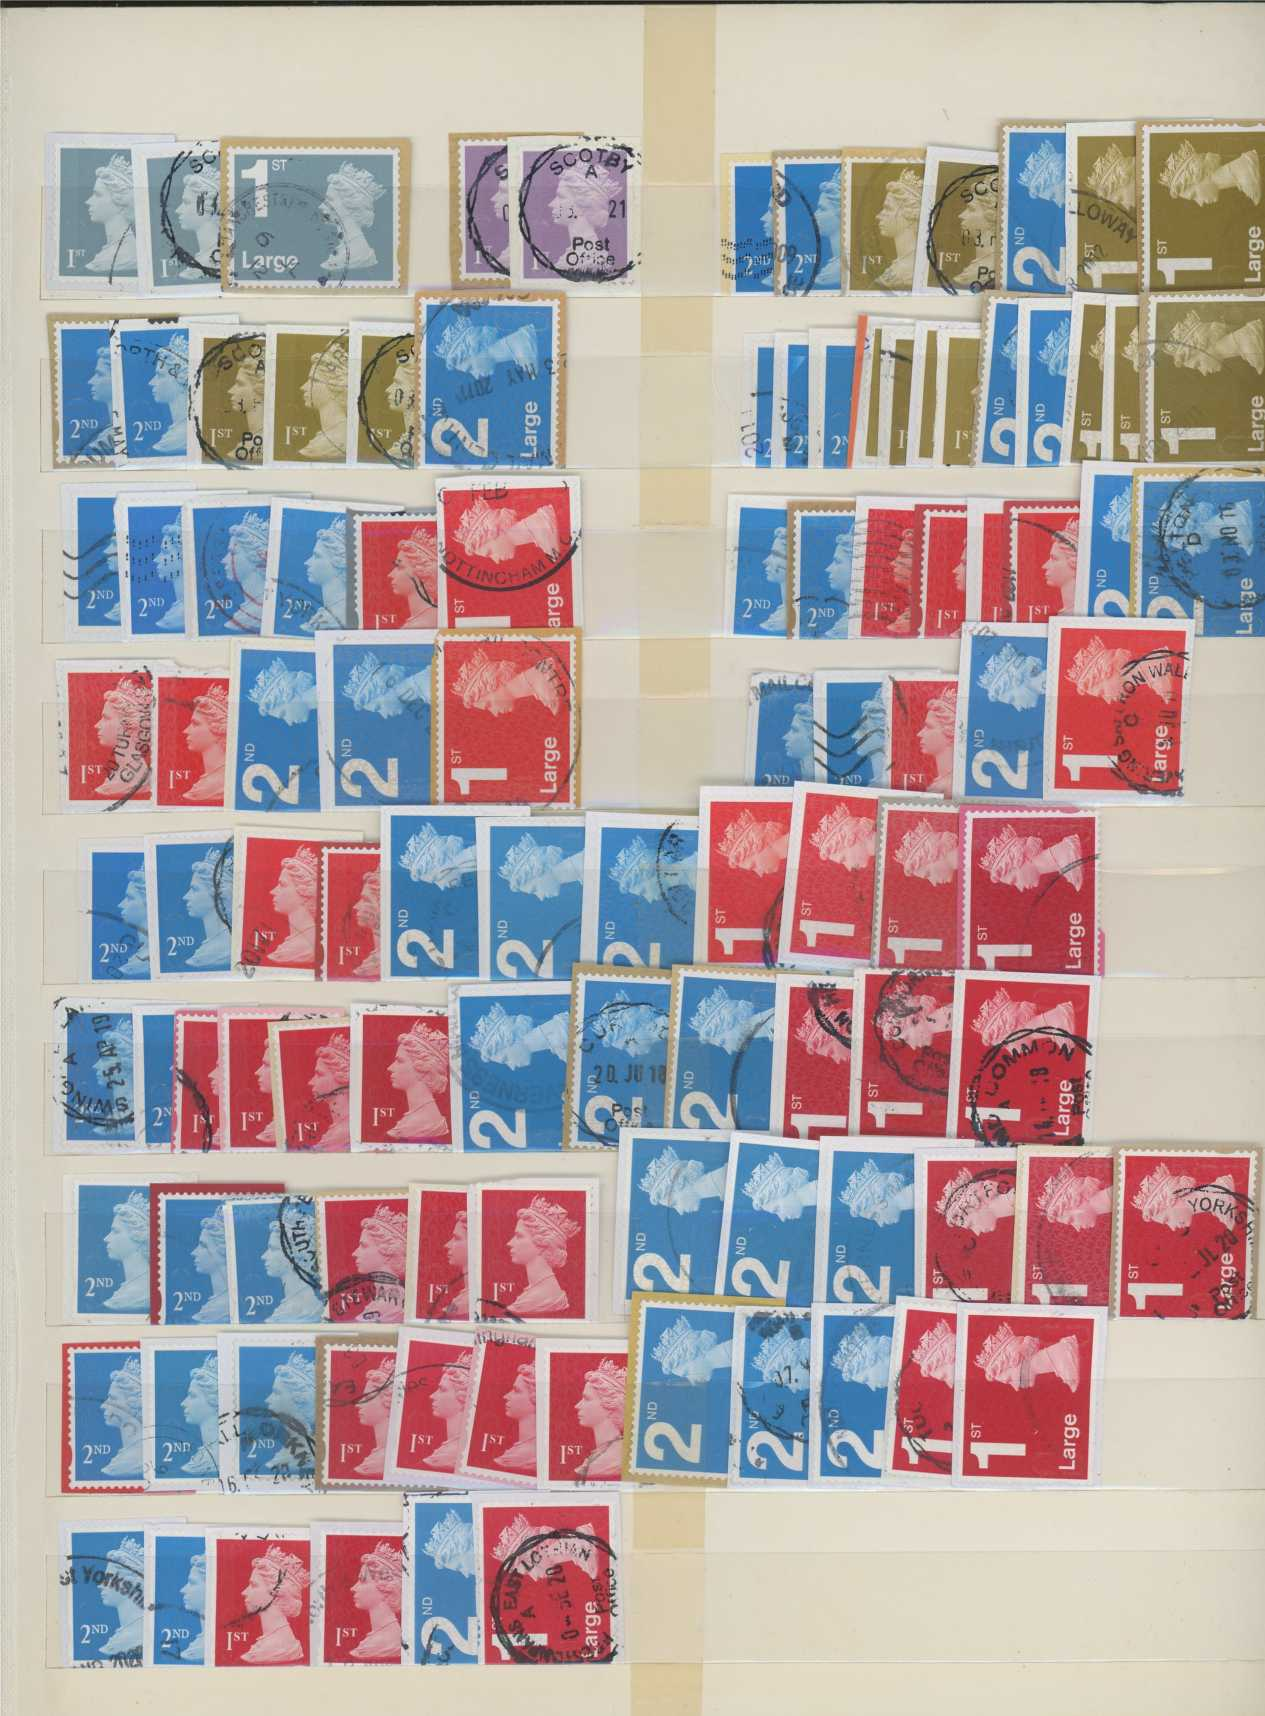 2009-2020 postally used Security Machins, nearly all F/U cds postmarks. - Image 2 of 2